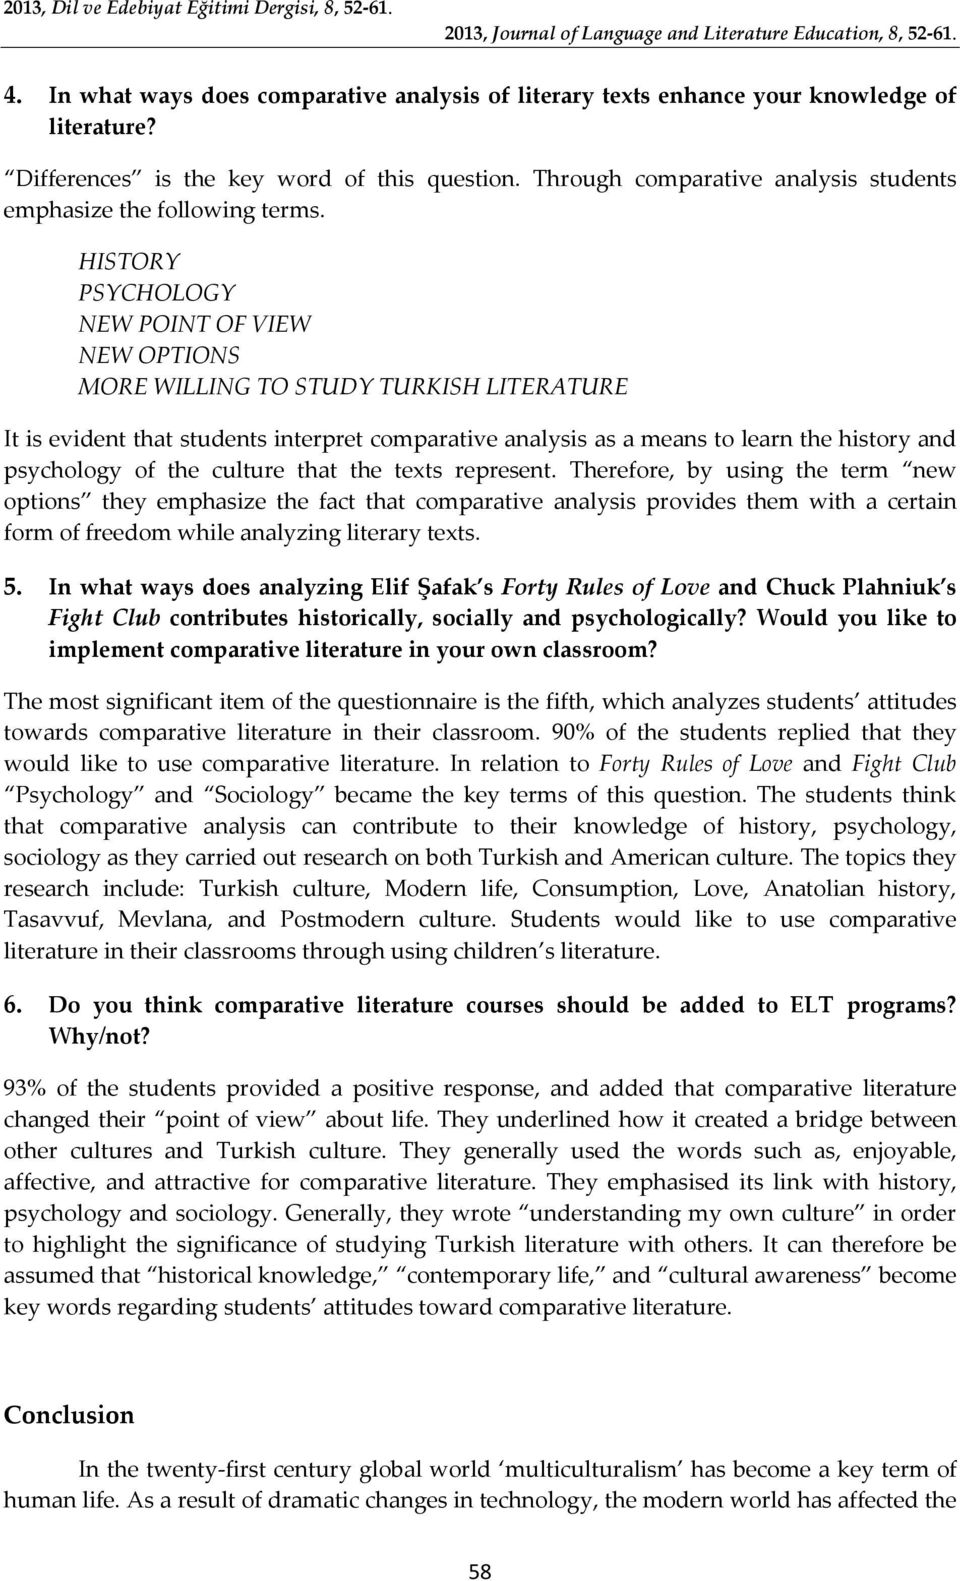 HISTORY PSYCHOLOGY NEW POINT OF VIEW NEW OPTIONS MORE WILLING TO STUDY TURKISH LITERATURE It is evident that students interpret comparative analysis as a means to learn the history and psychology of